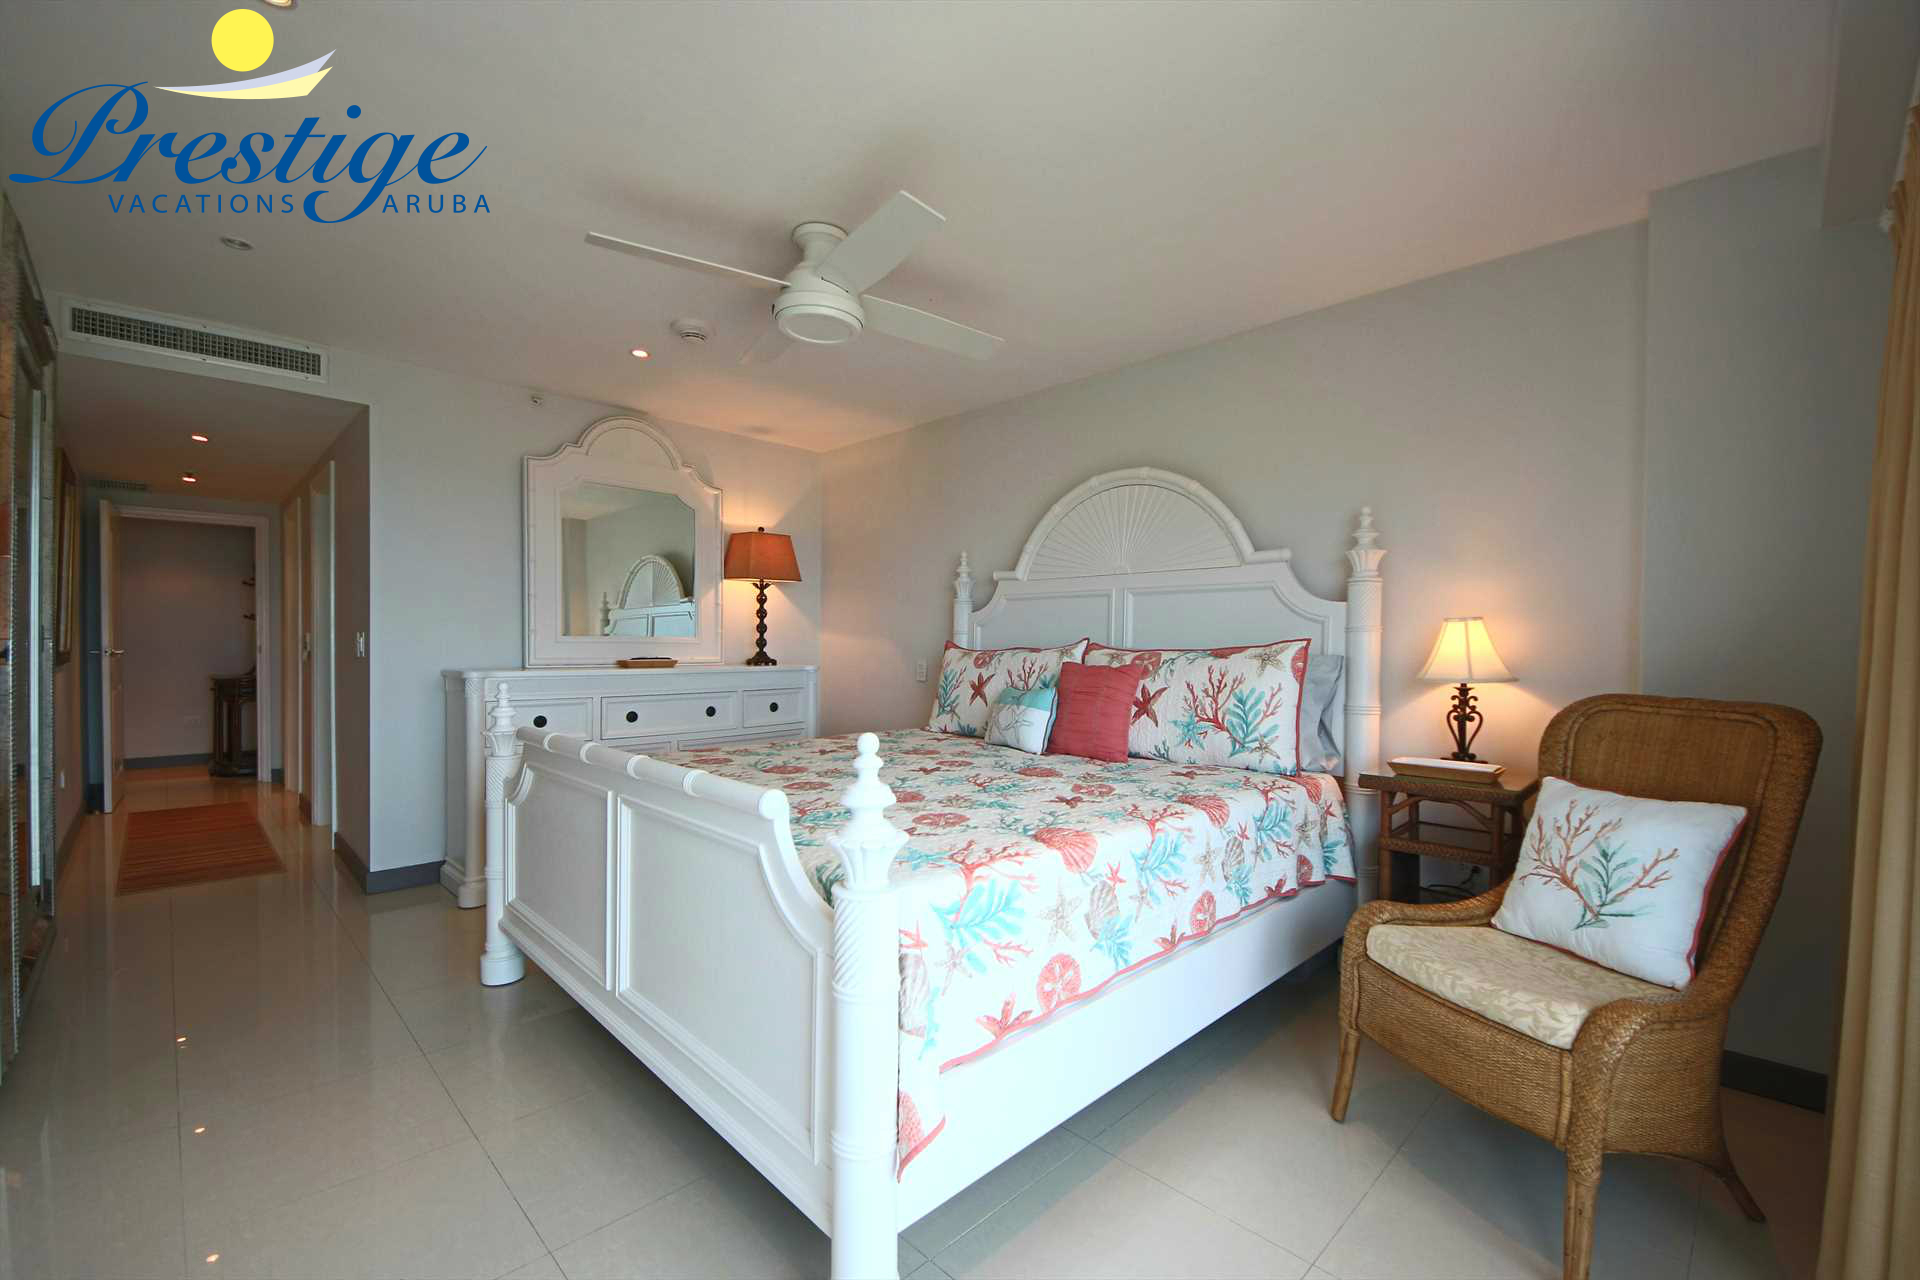 The master bedroom with king-size bed and stunning views